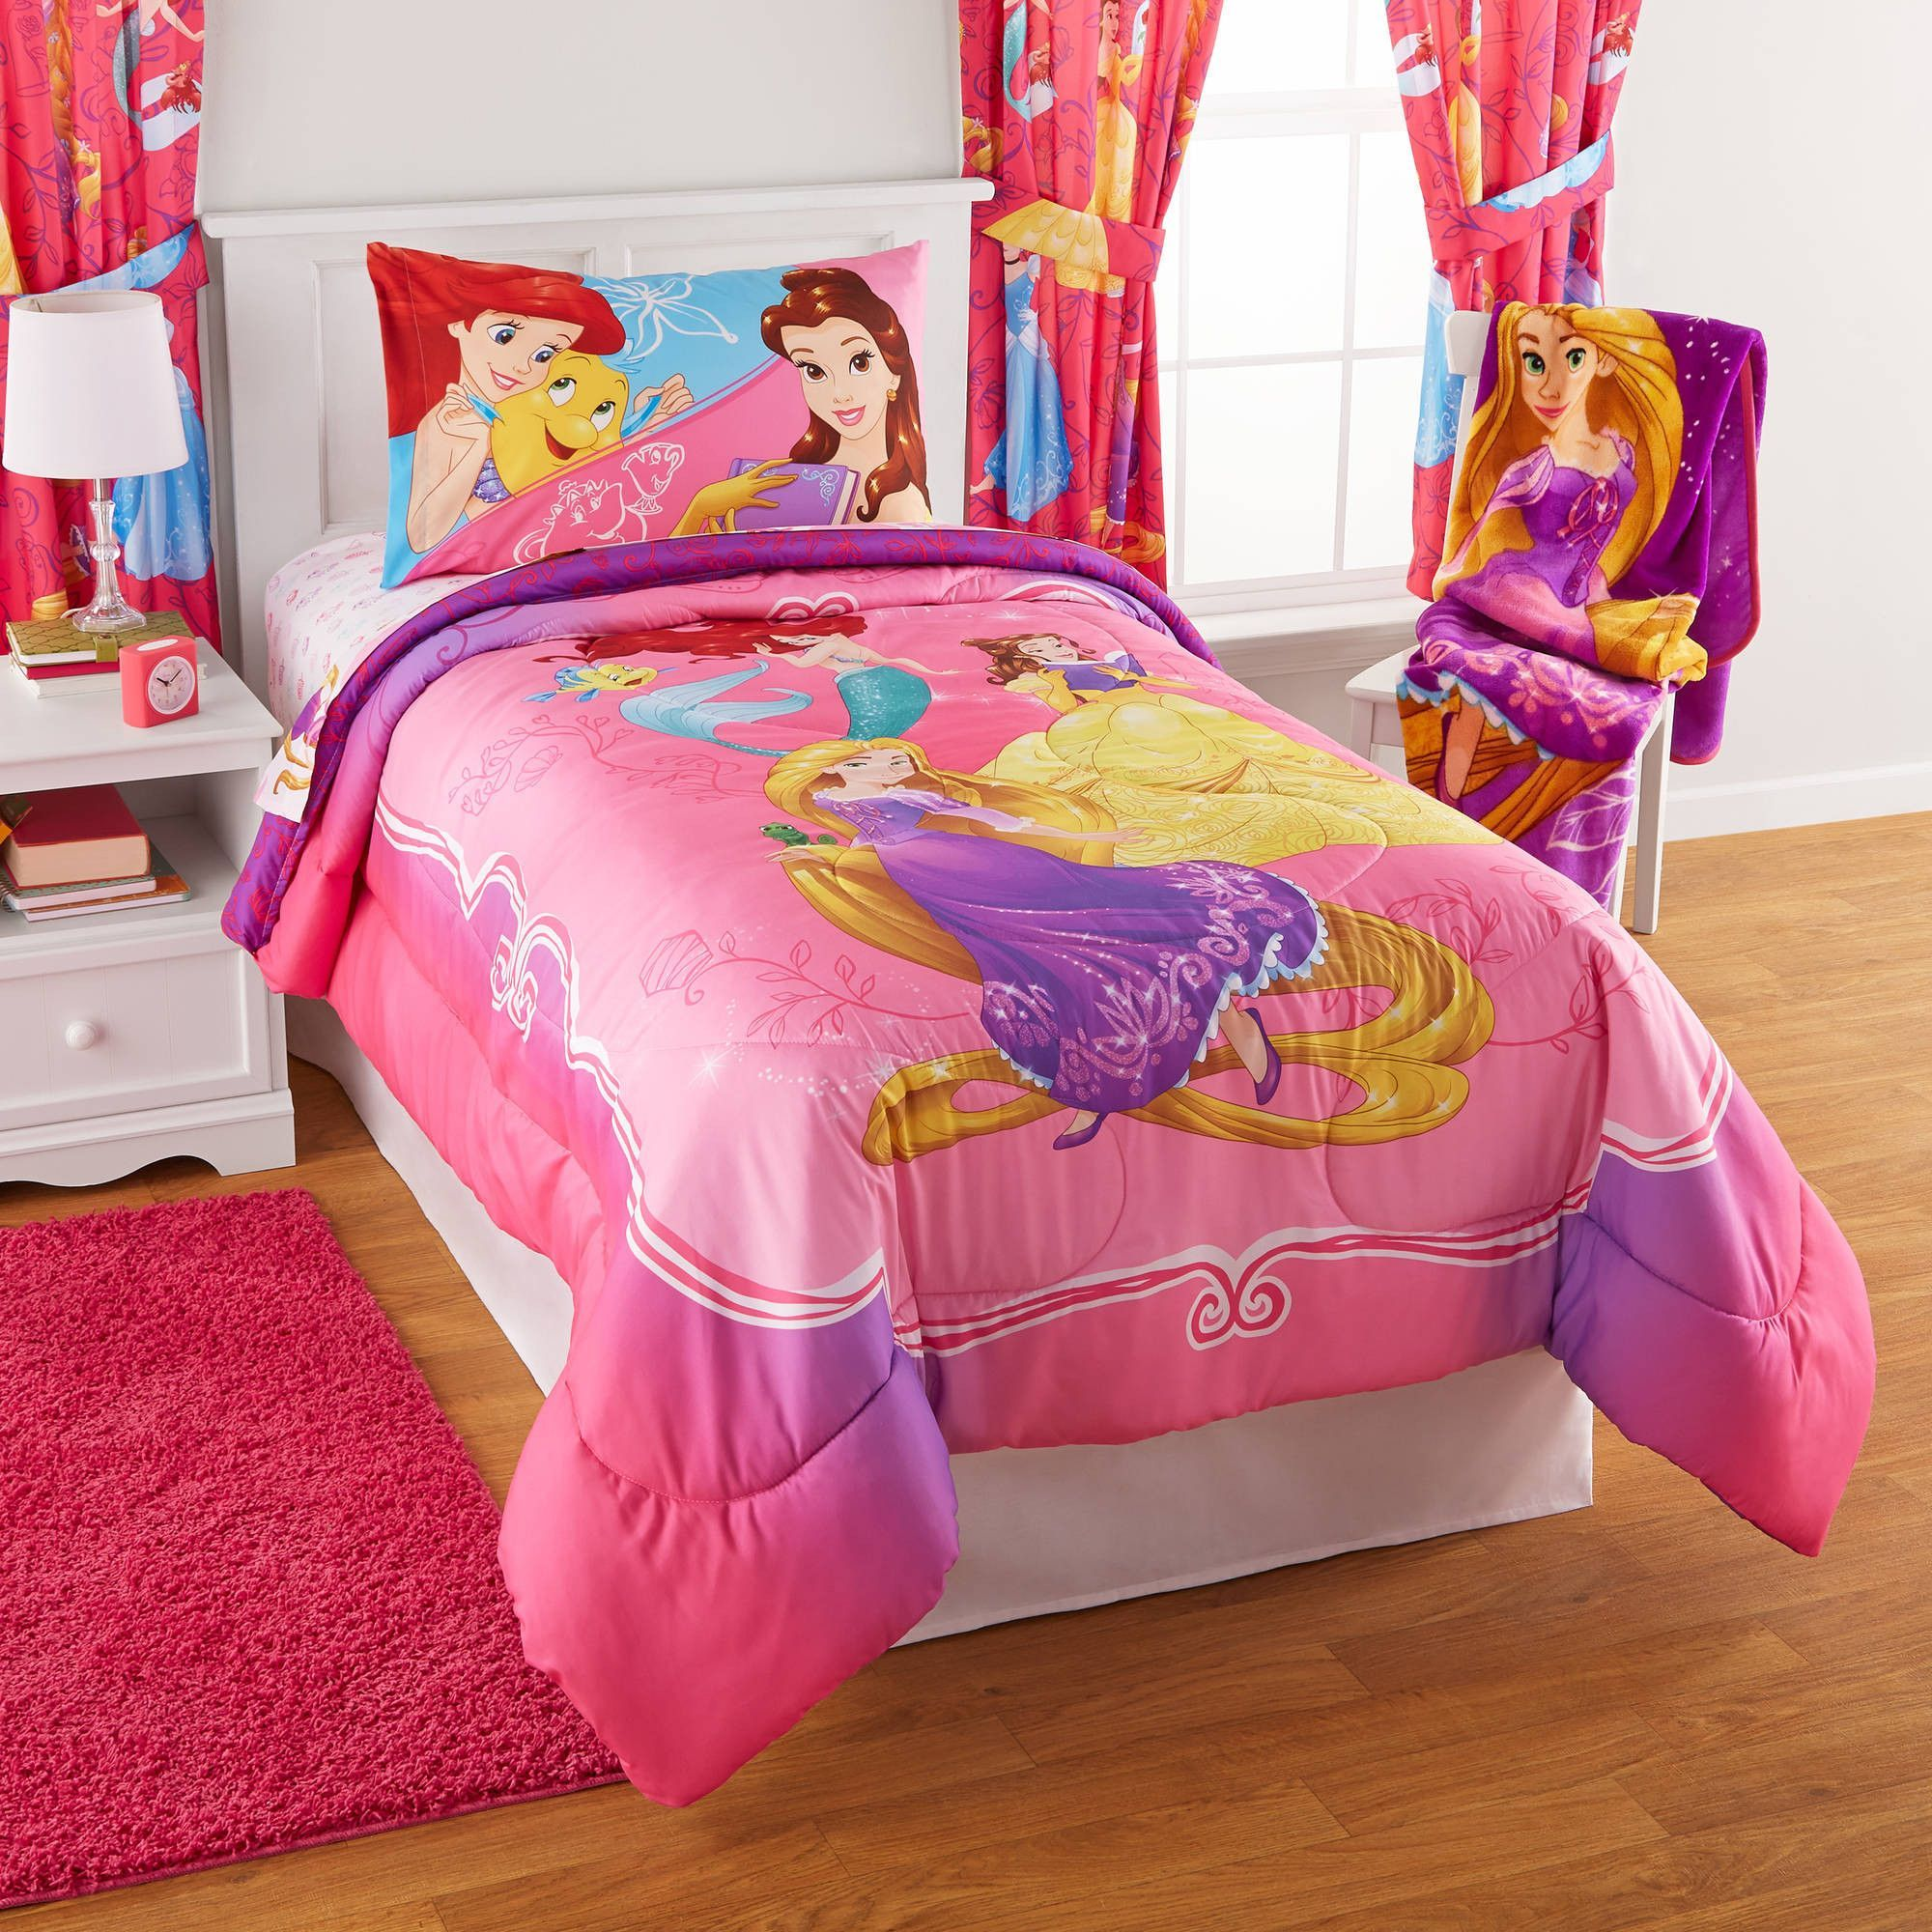 Childrens Kids Toddlers Twin Size Bedding Comforter Sets